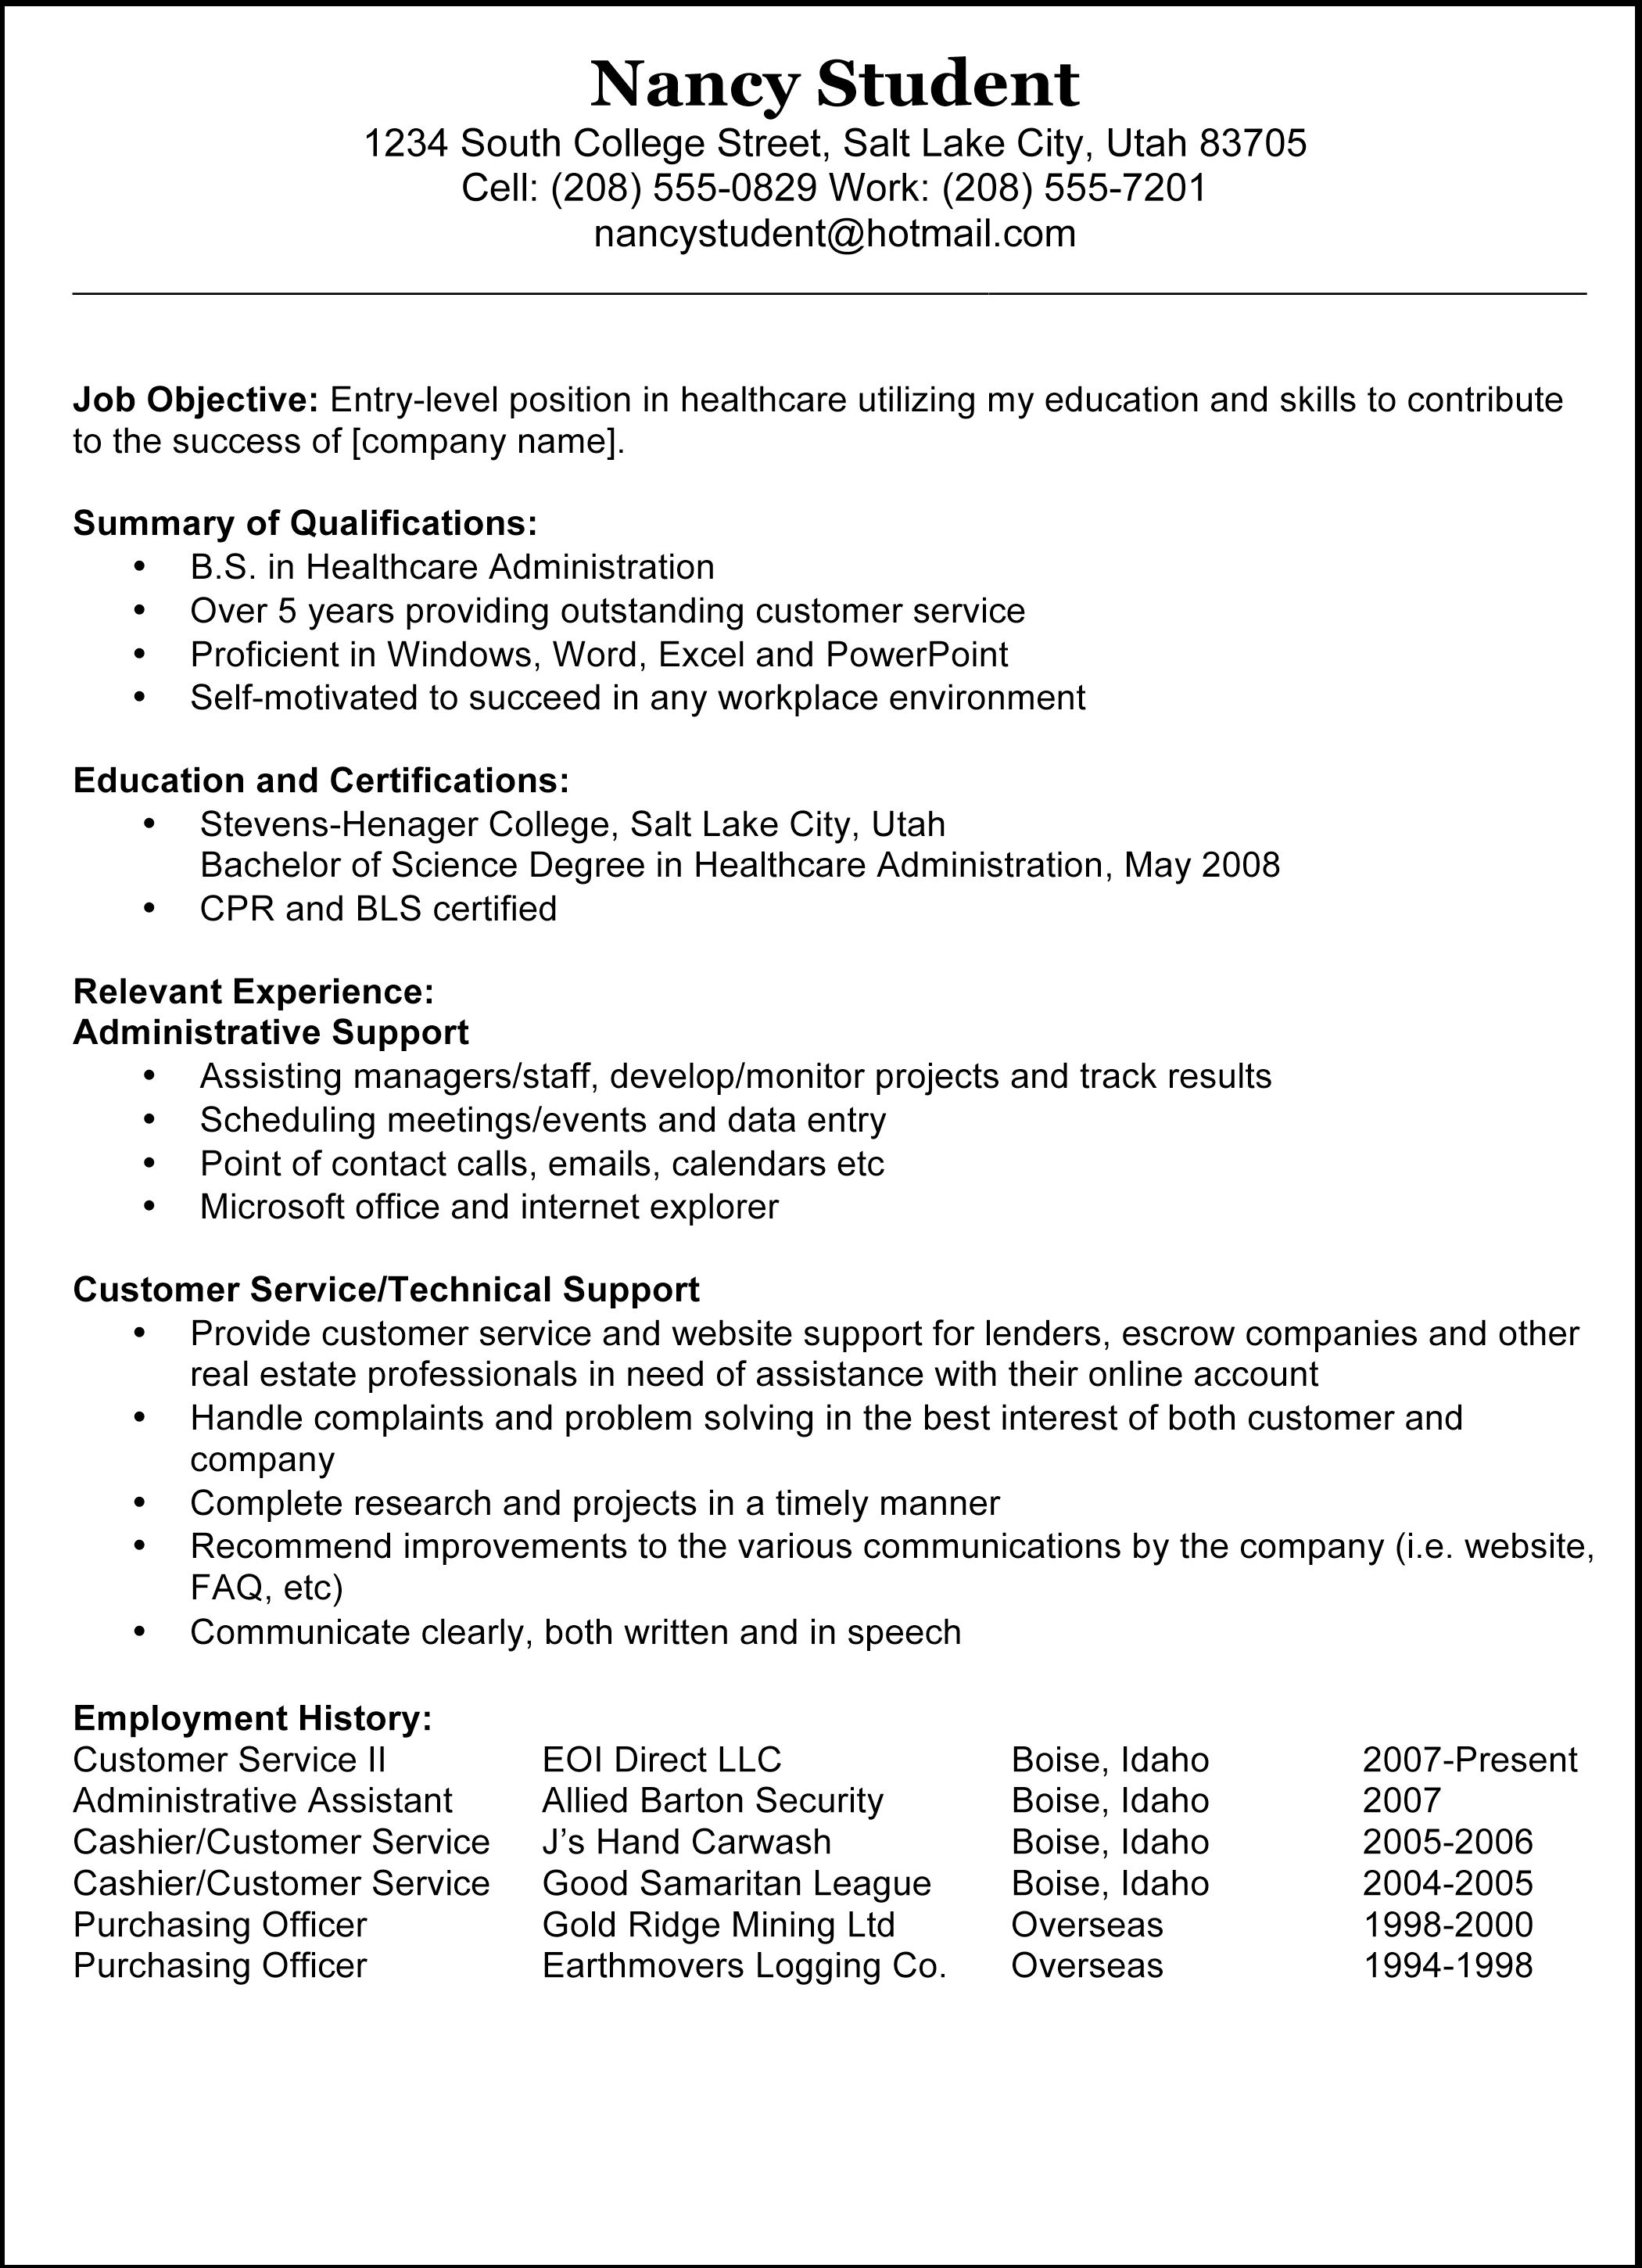 Resume Format Example Ziptogreen Within 81 Astounding Good Resume ...